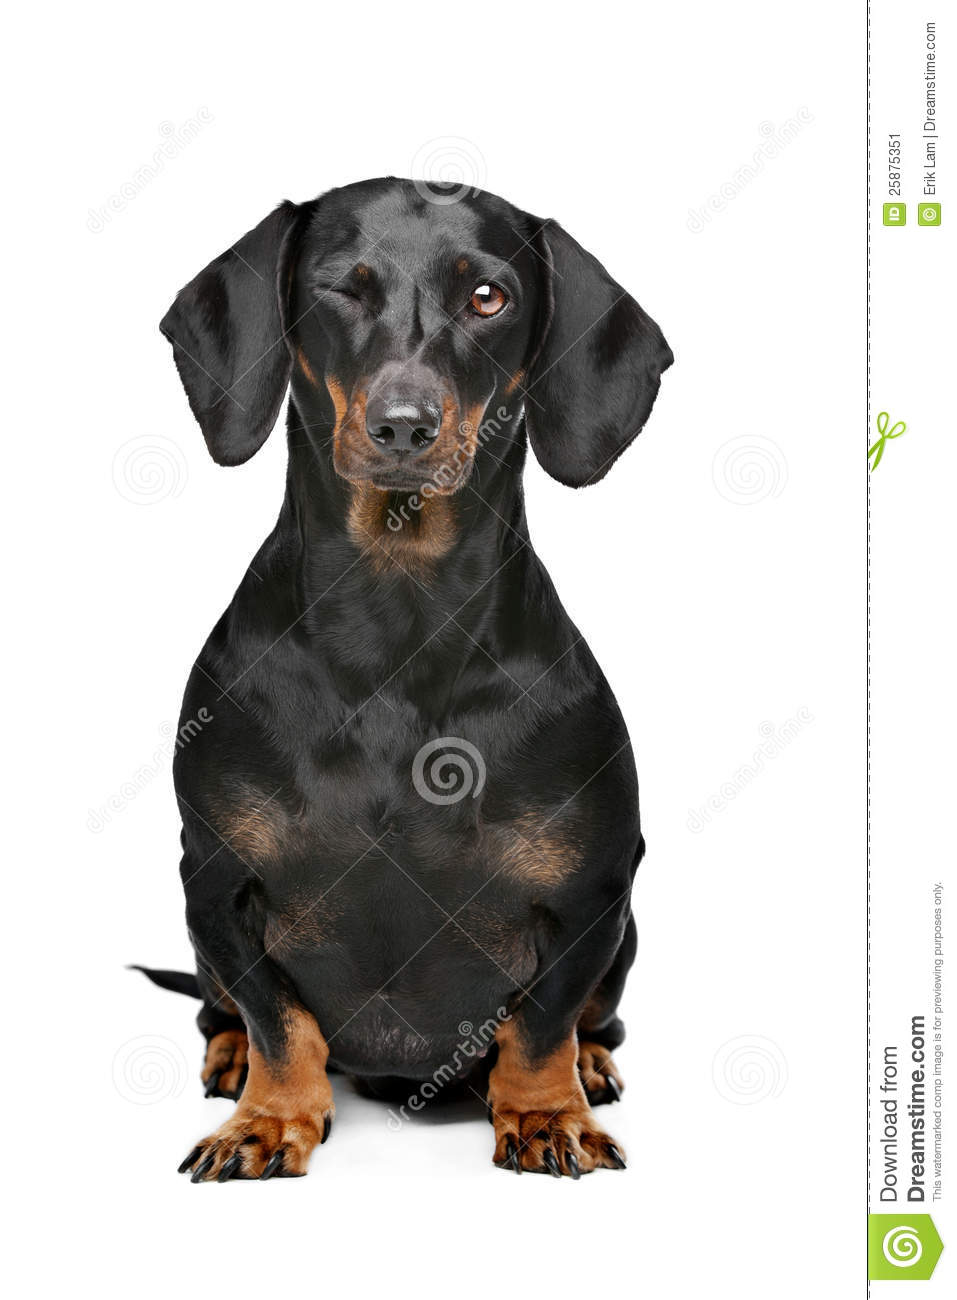 Black And Tan Dachshund Stock Image Image 25875351